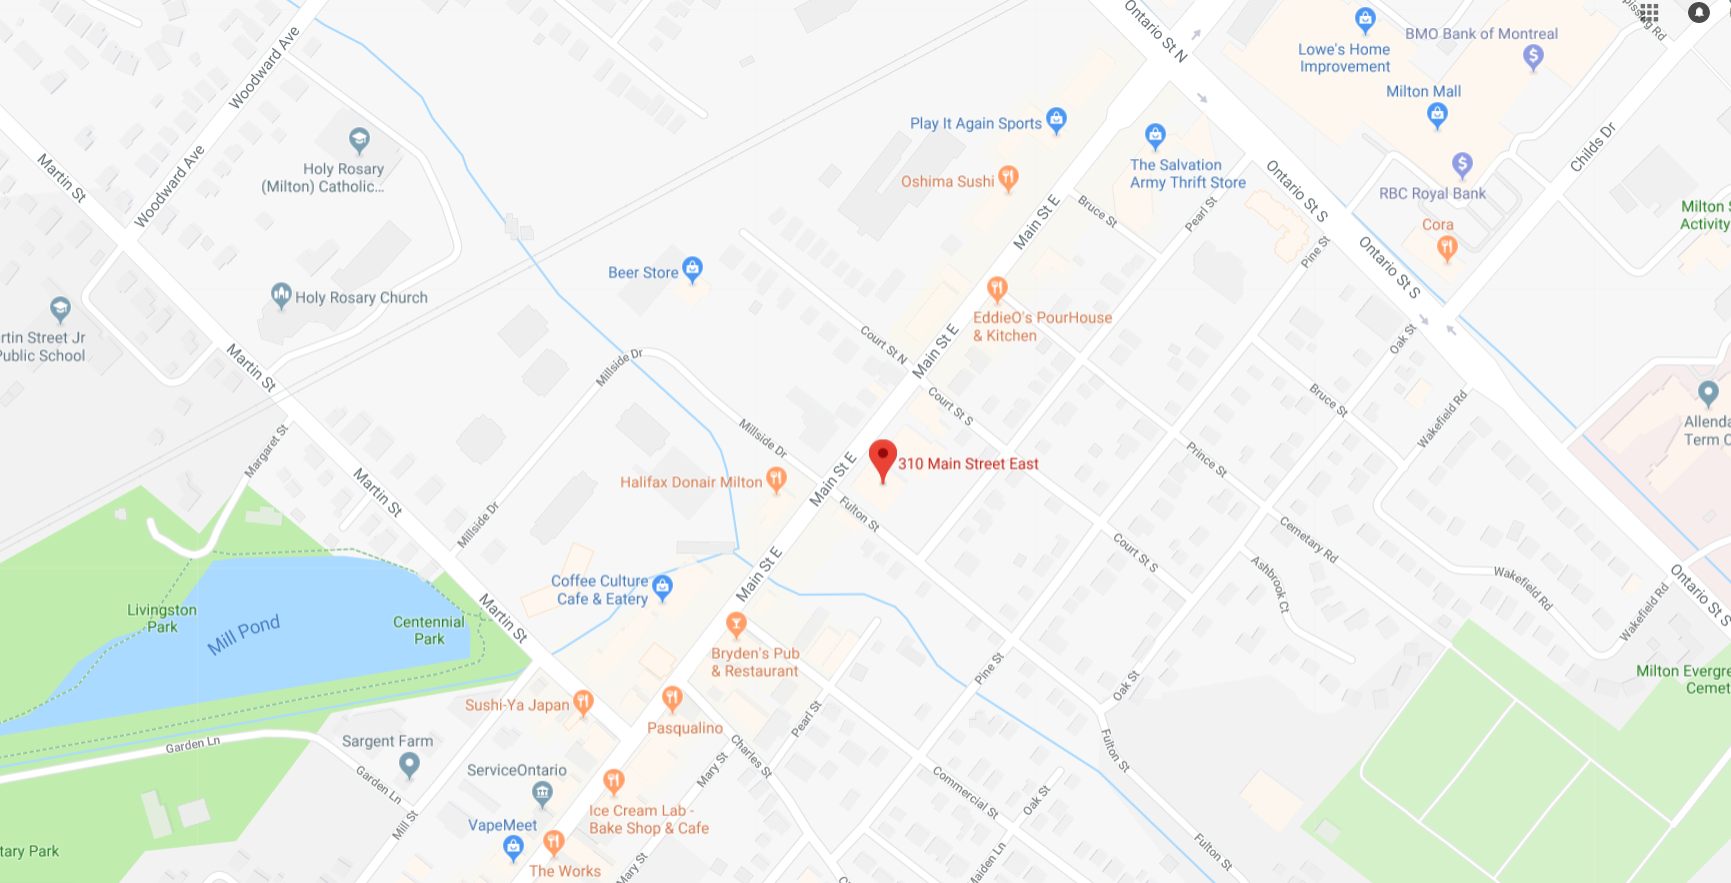 map of Milton CCAC Clinic